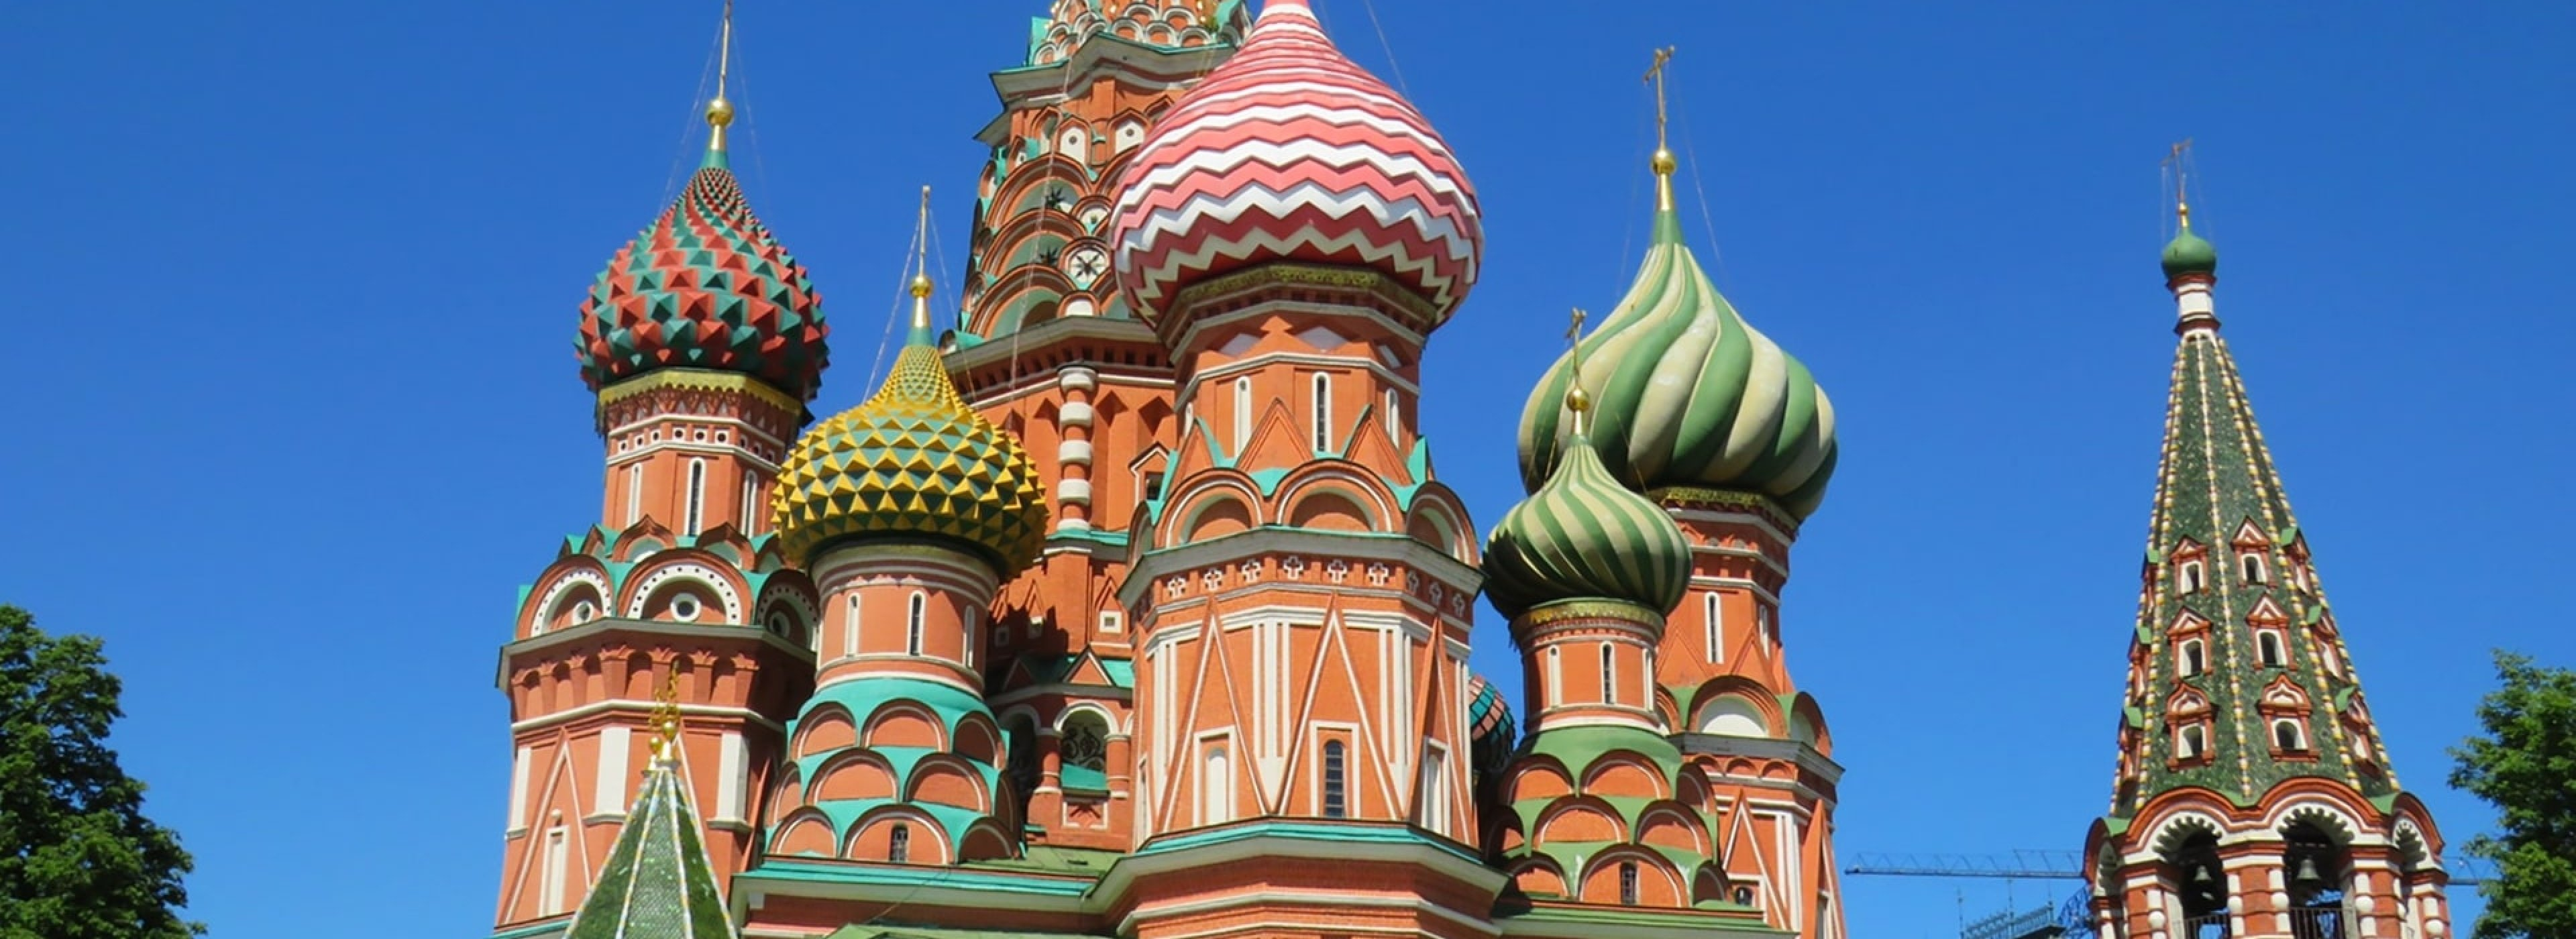 St. Basil's Church in Moscow